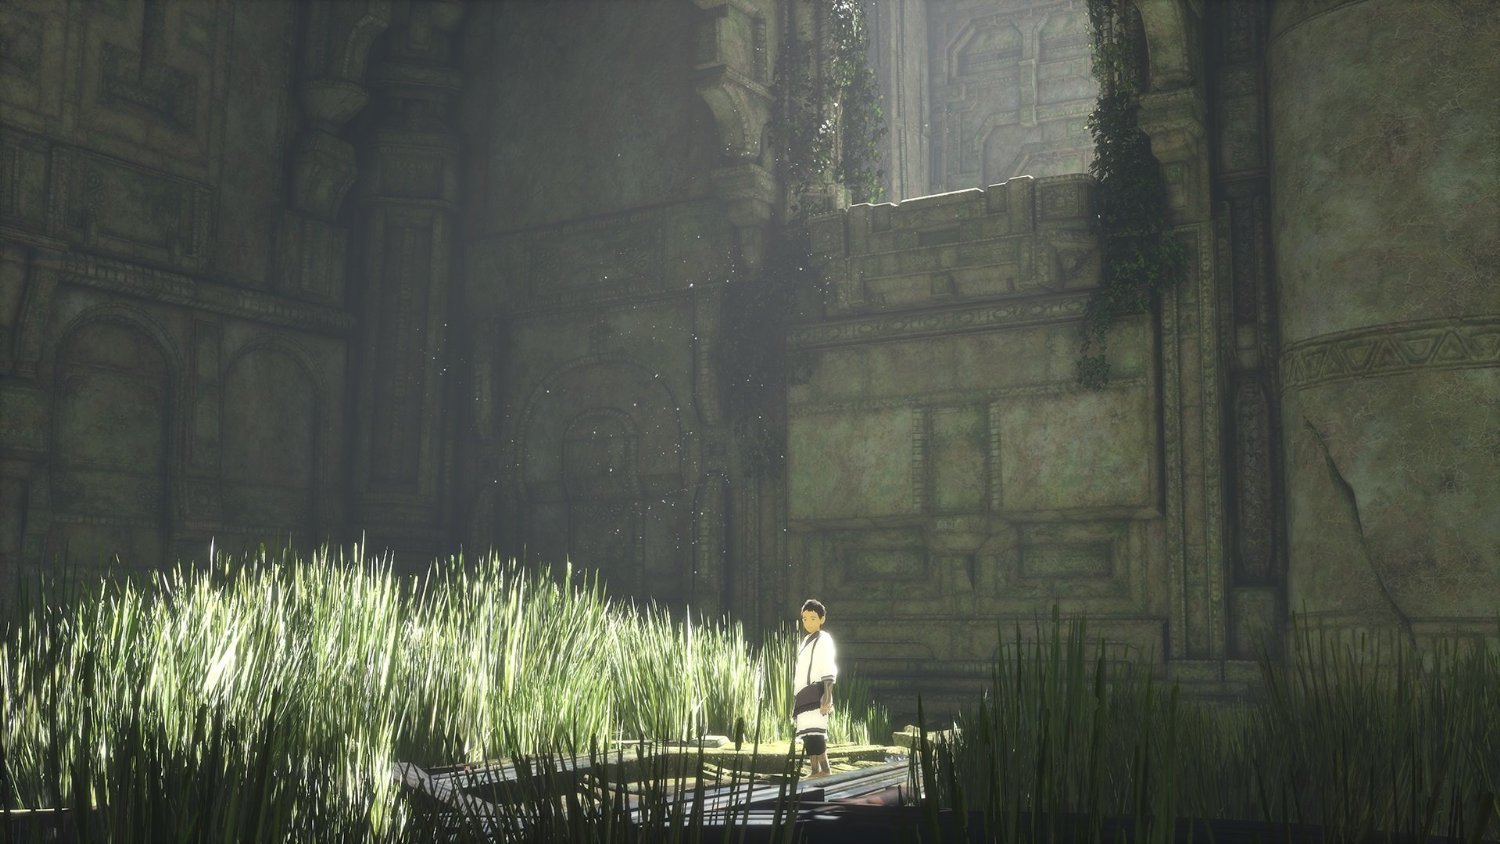 Les décors de The Last Guardian rappellent Ico et Shadow of the Colossus.